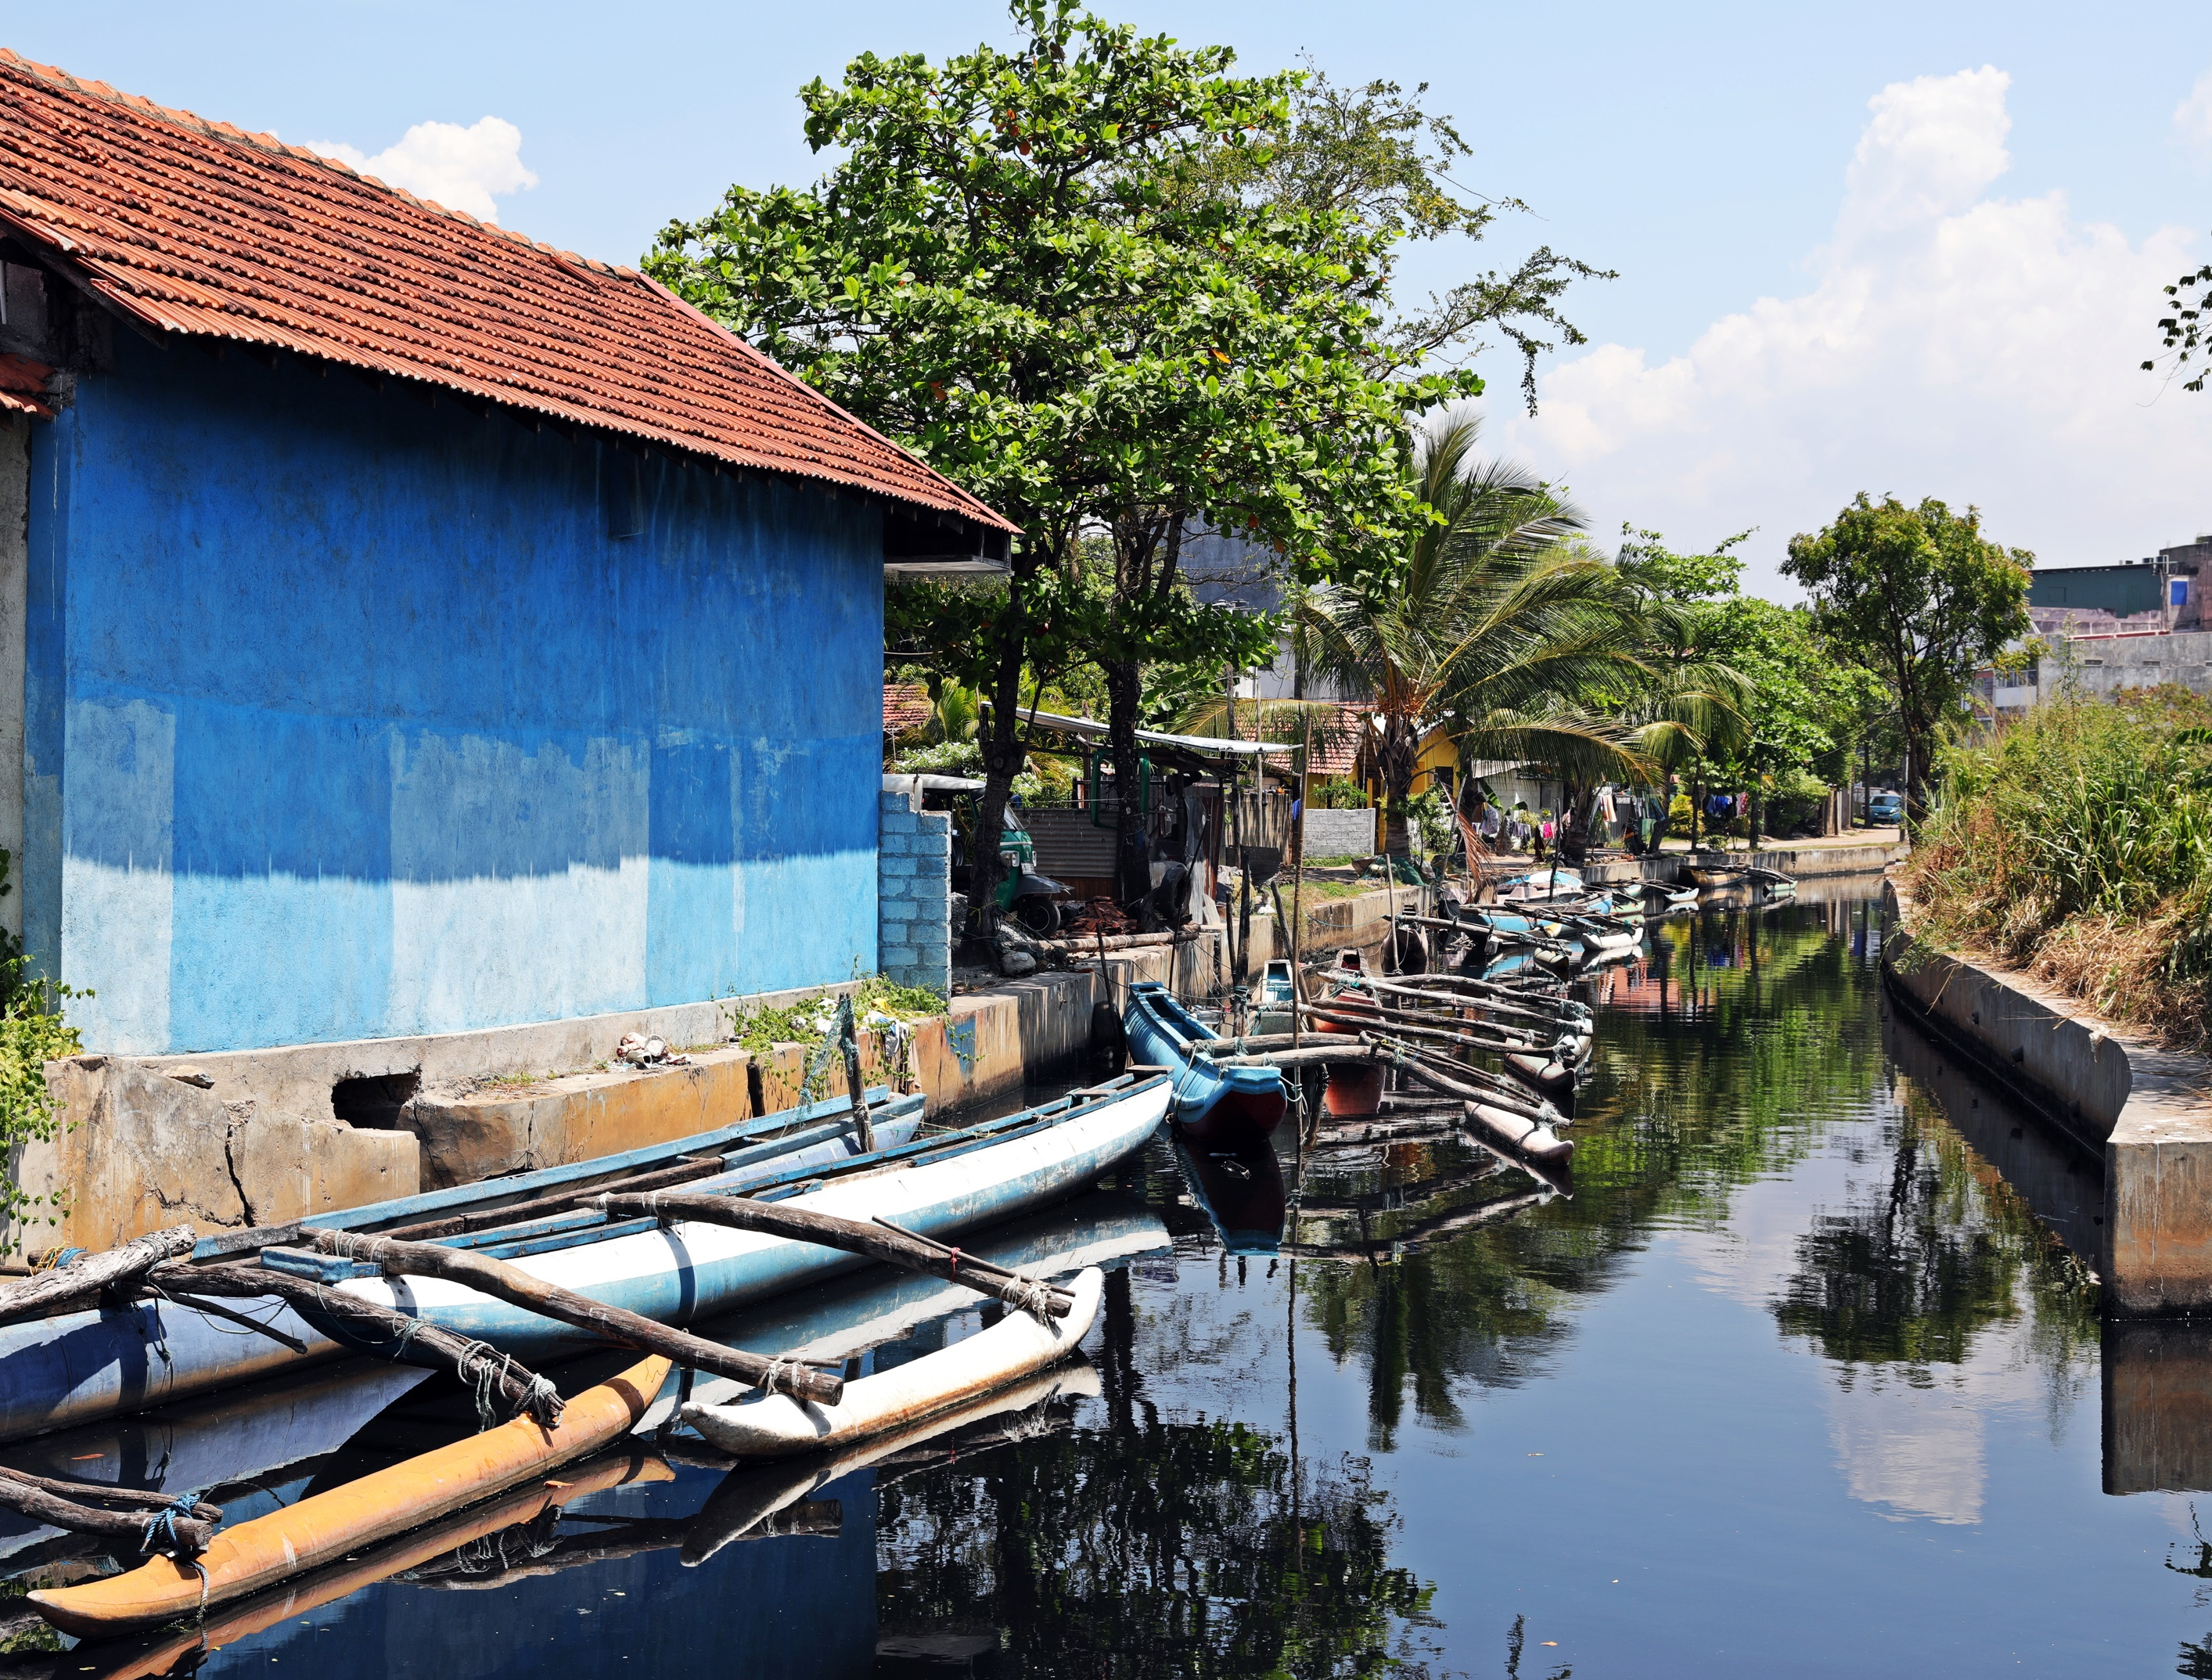 Dutch canals in fishing boats, Negombo